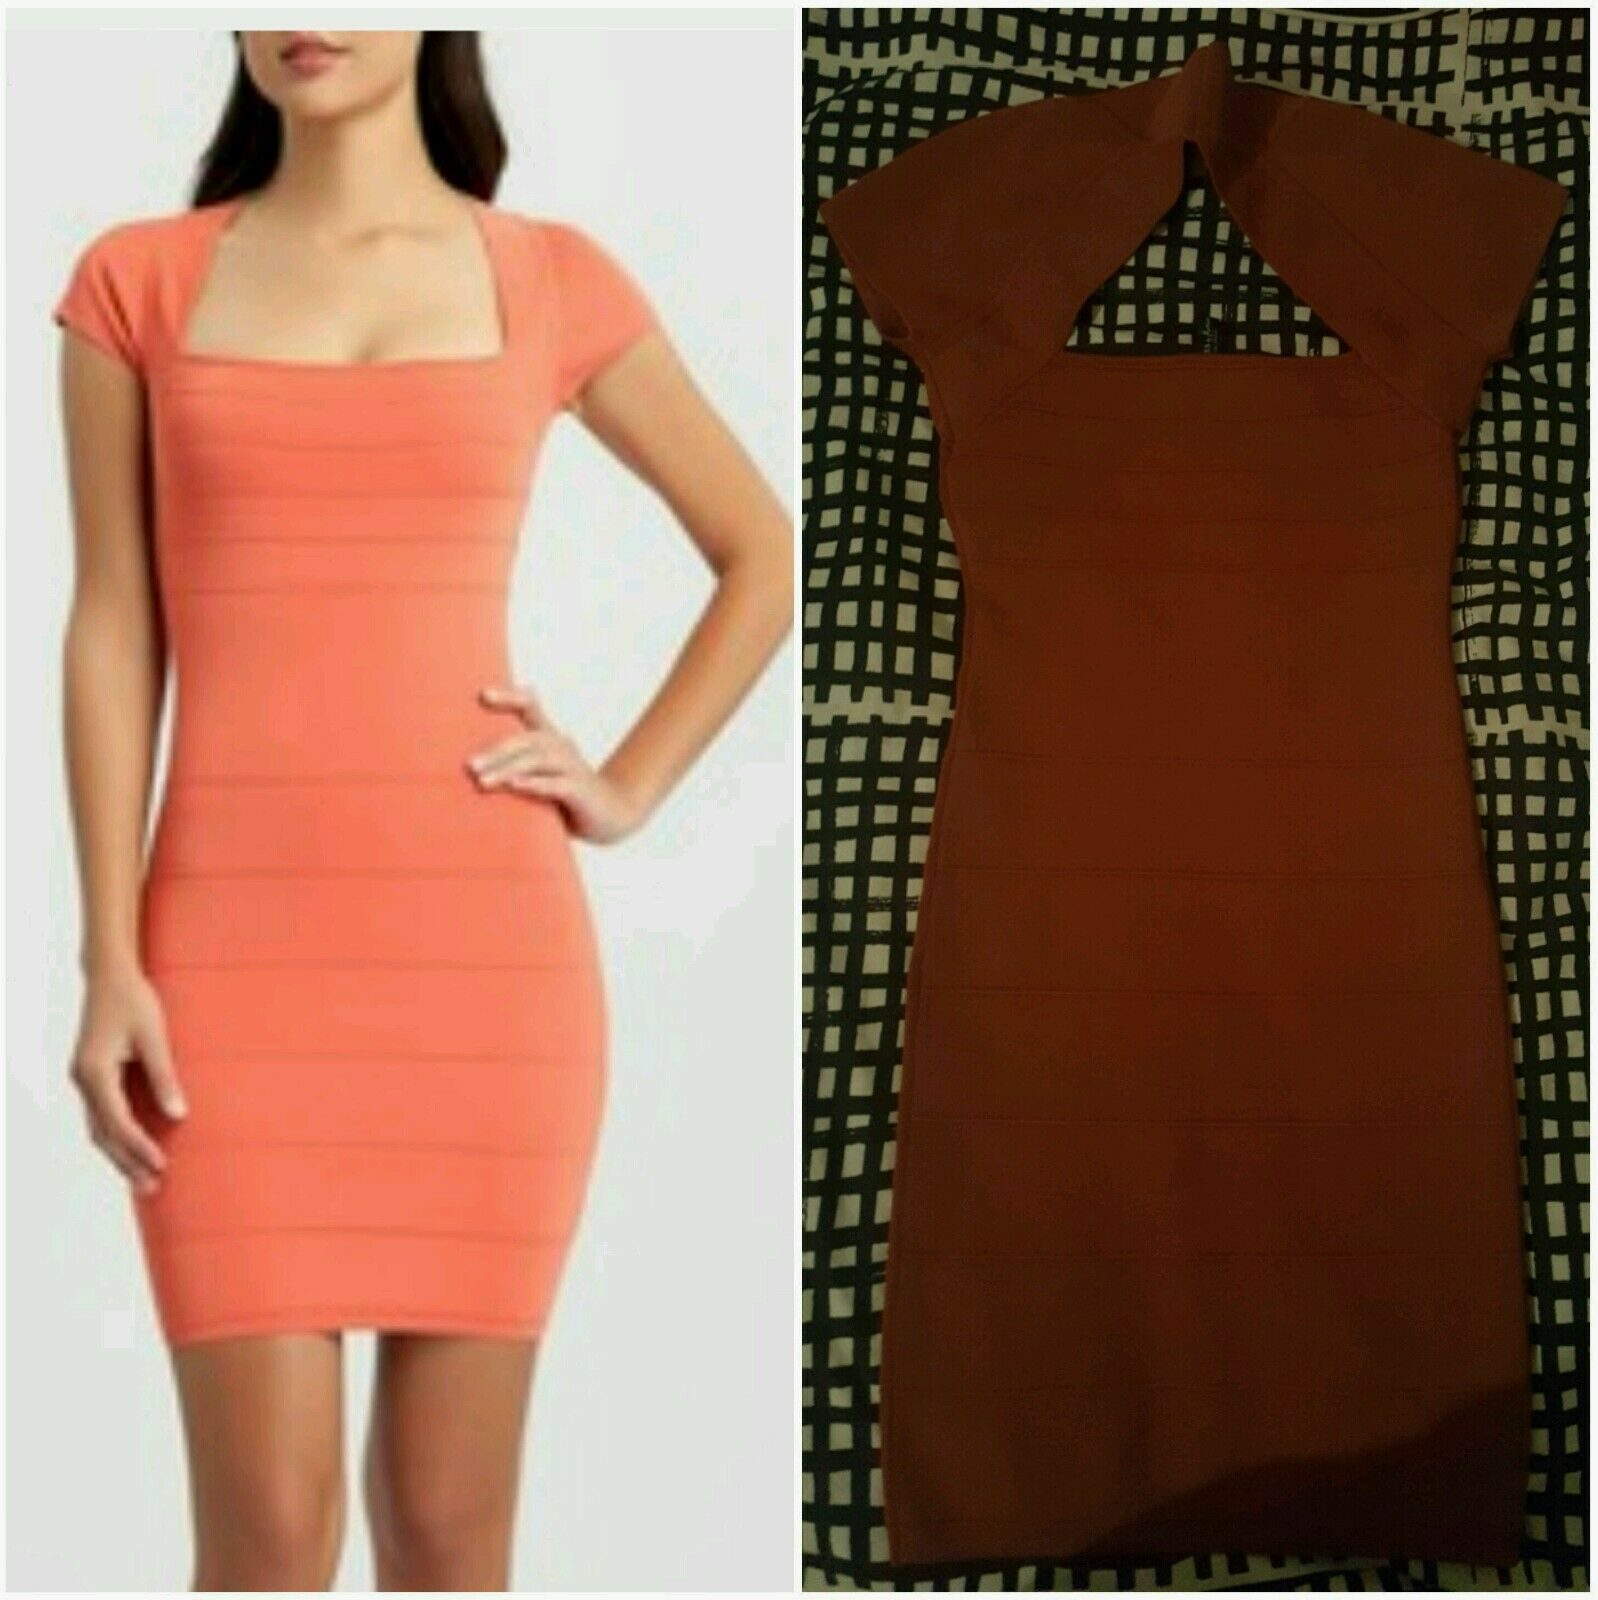 NWT GUESS BY MARCIANO RUST SHANE BANDAGE DRESS Größe S